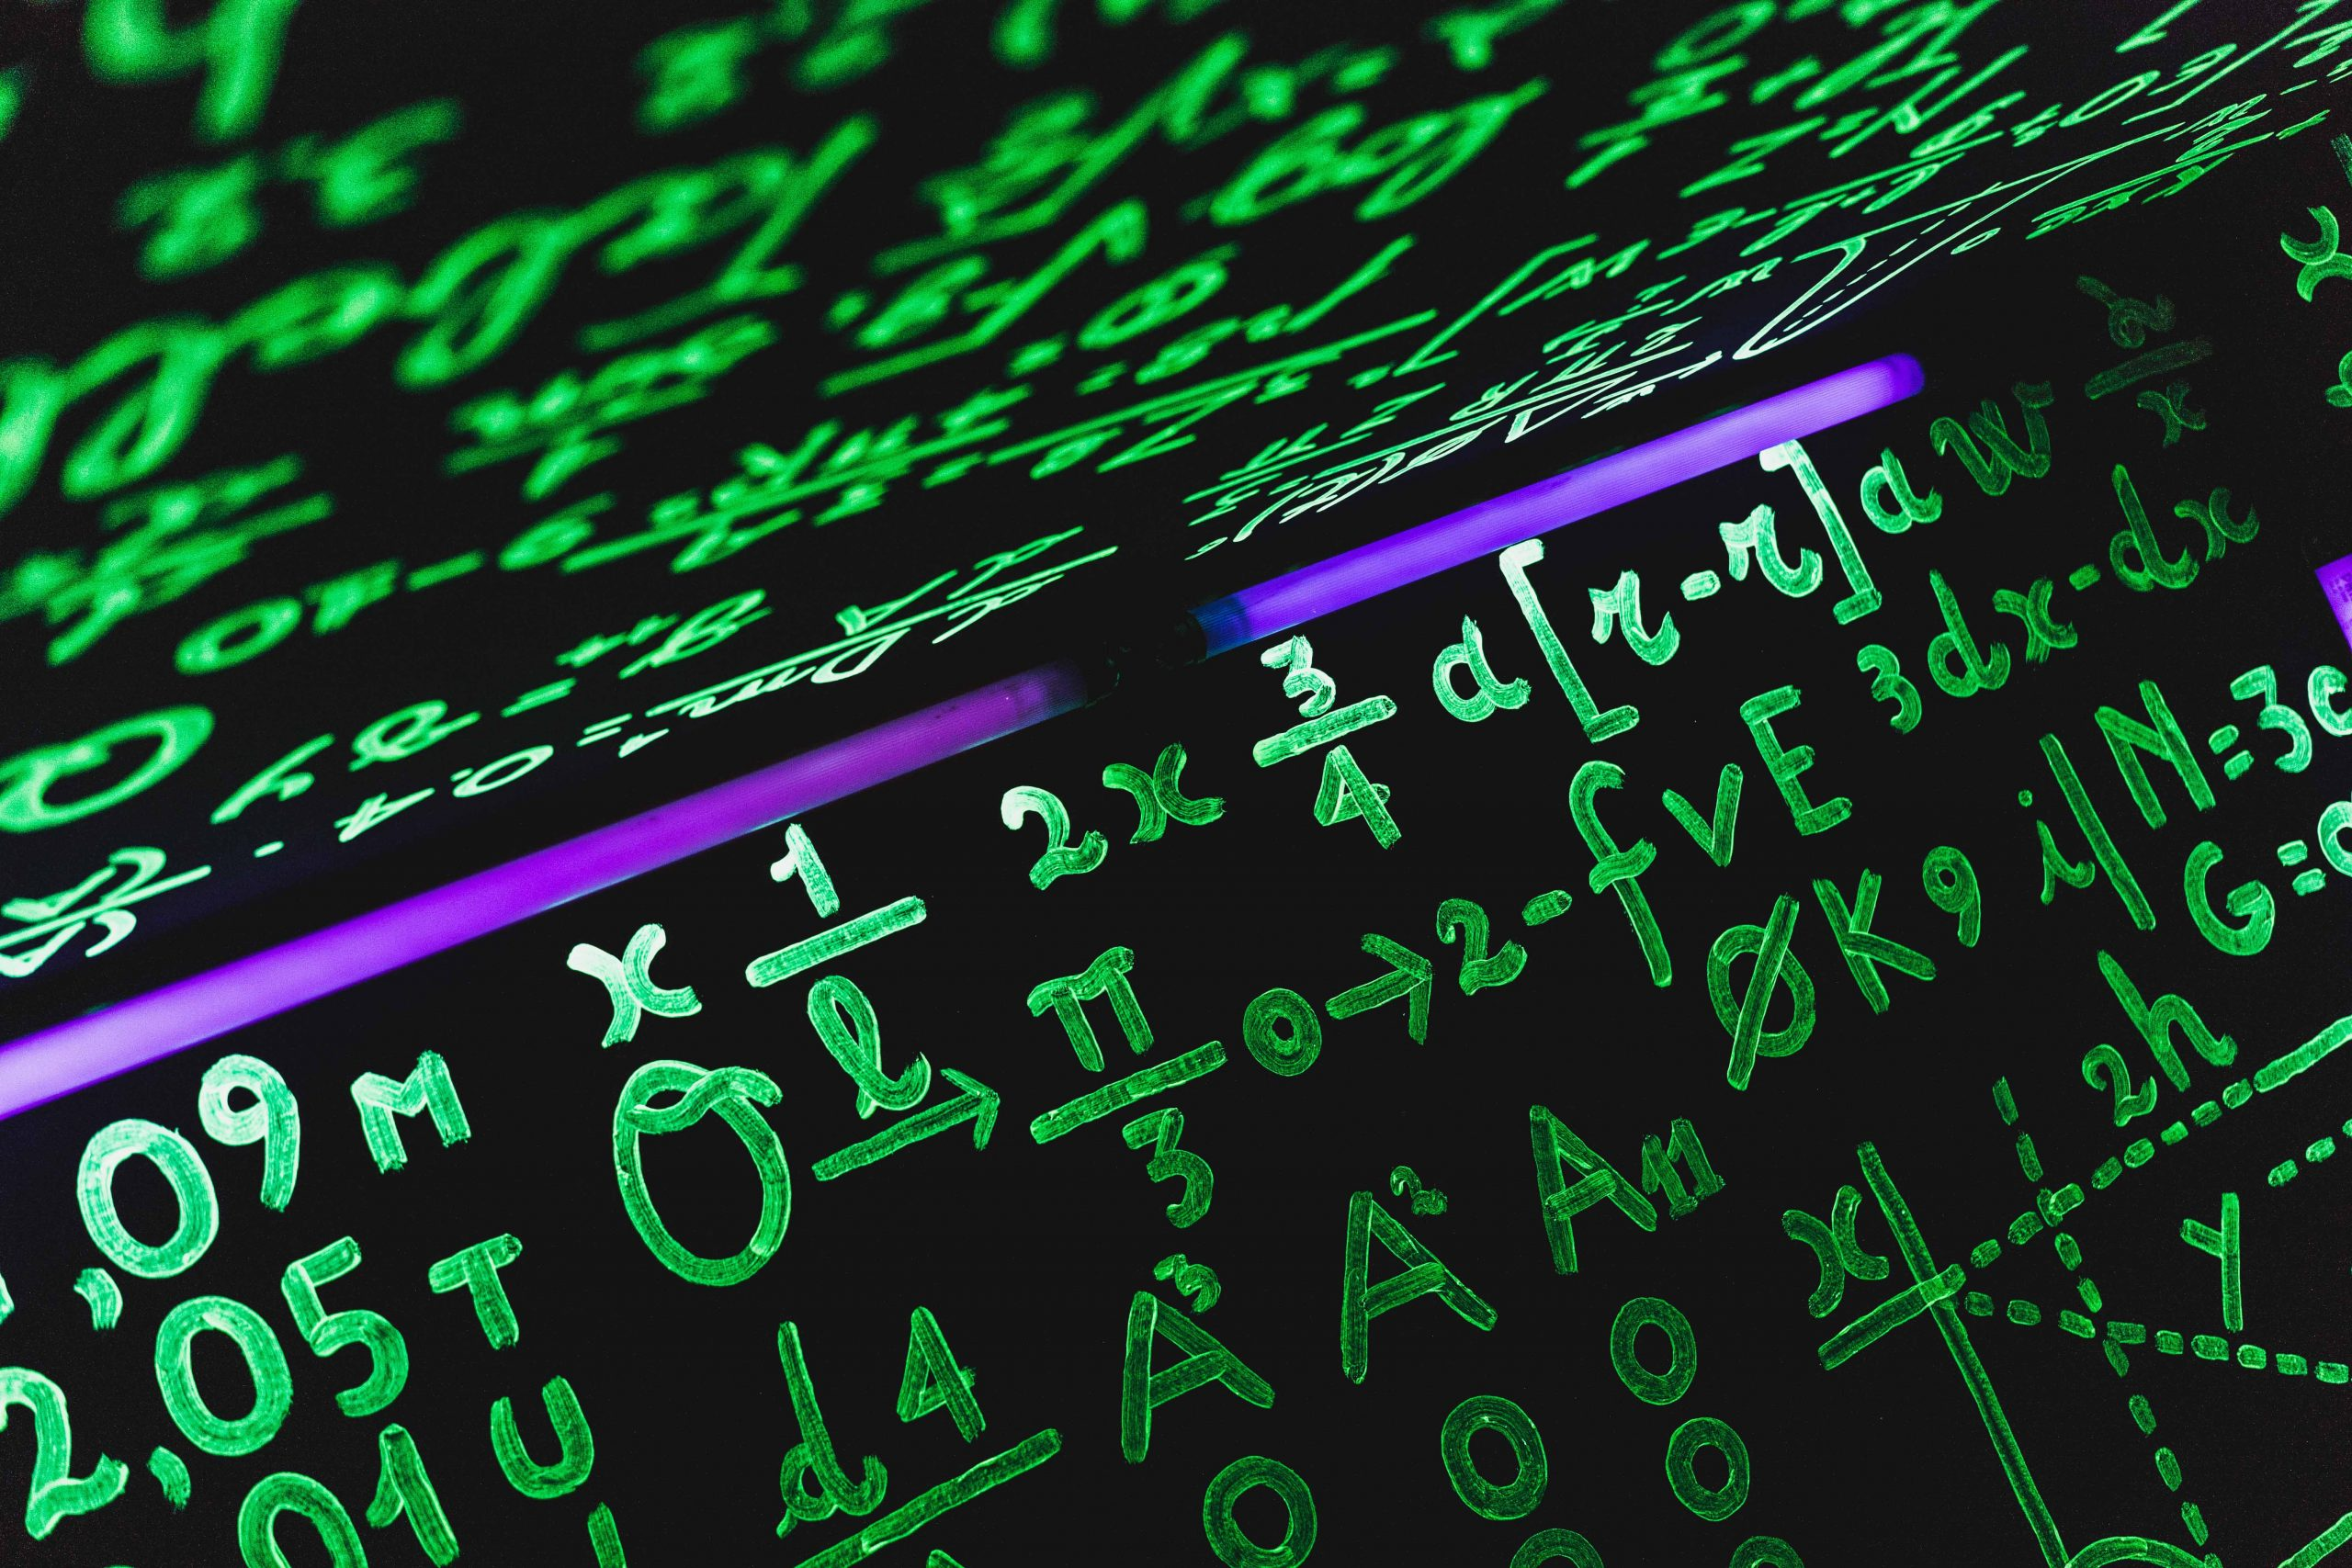 Green math equations on black background